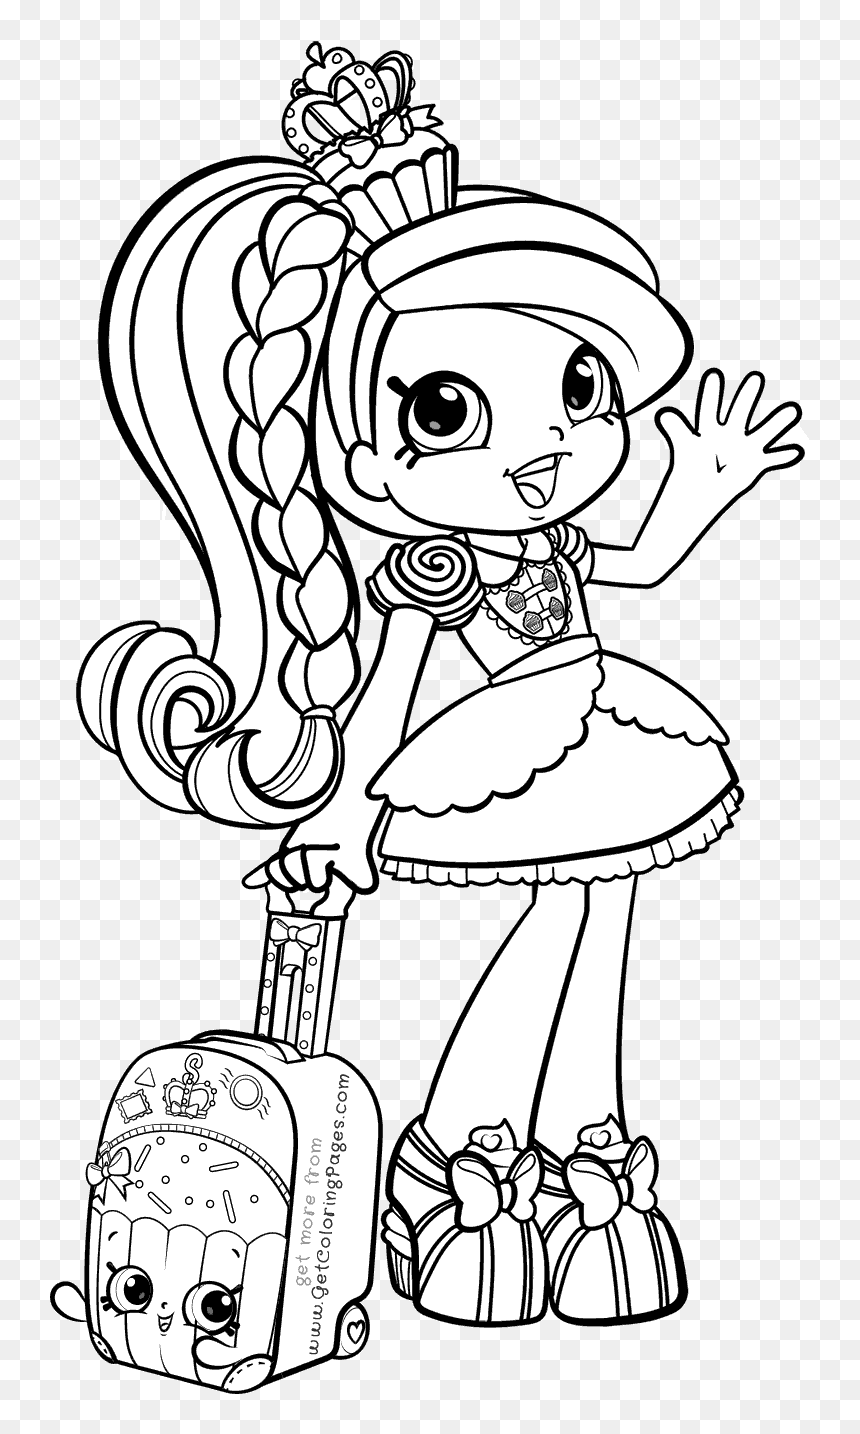 Shopkins Shoppies Coloring Pages, HD Png Download - vhv